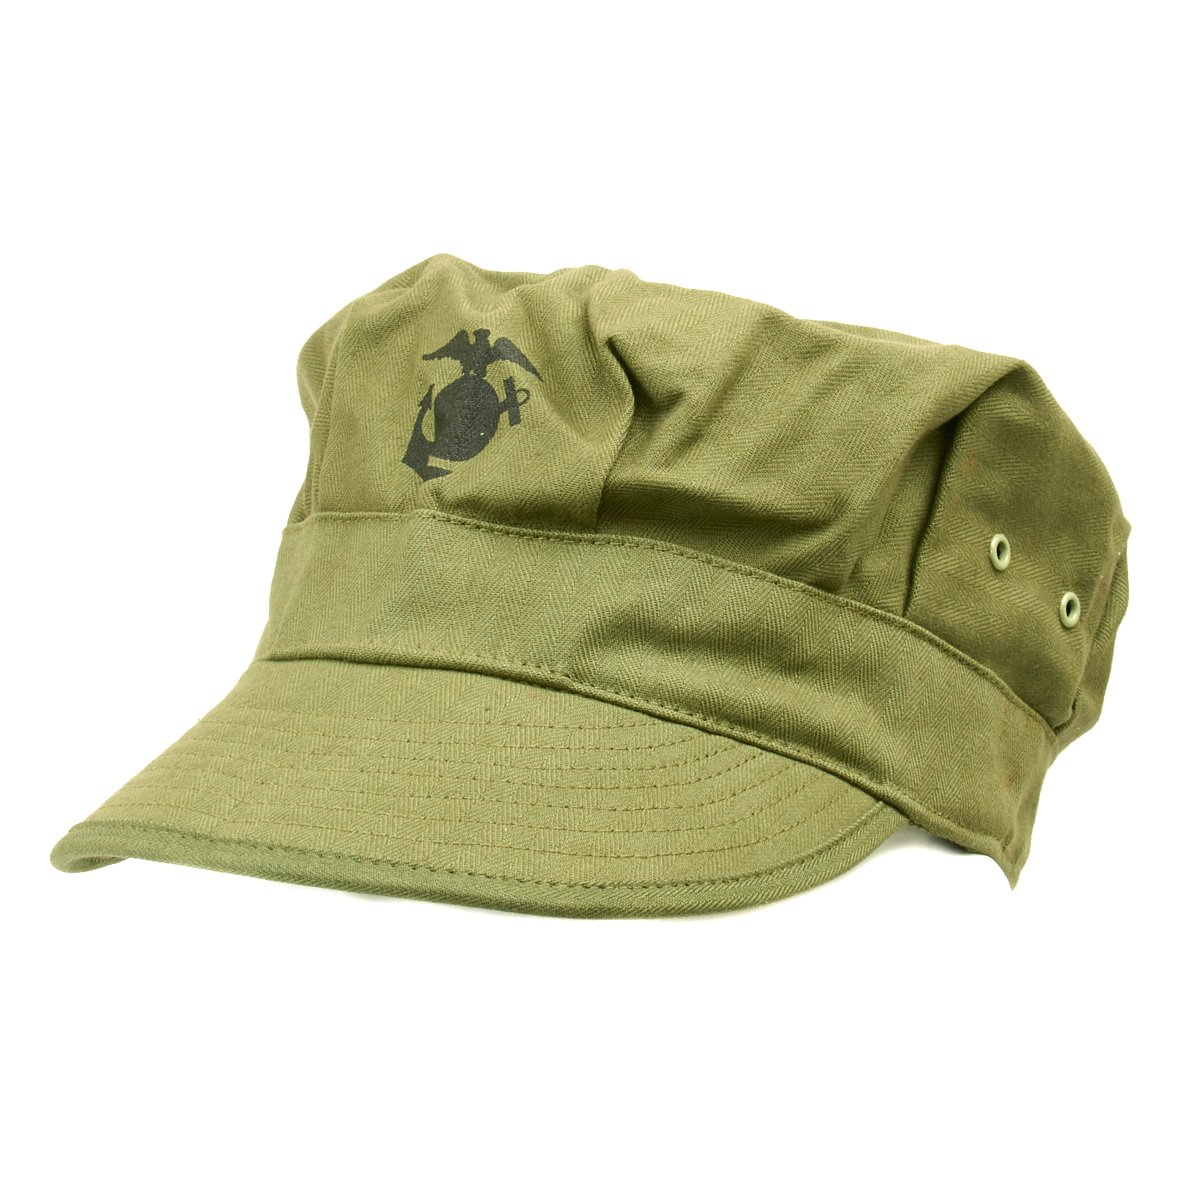 WW2 US HBT USMC Green Marine Corps Cap Hat Replica HIGH QUALITY